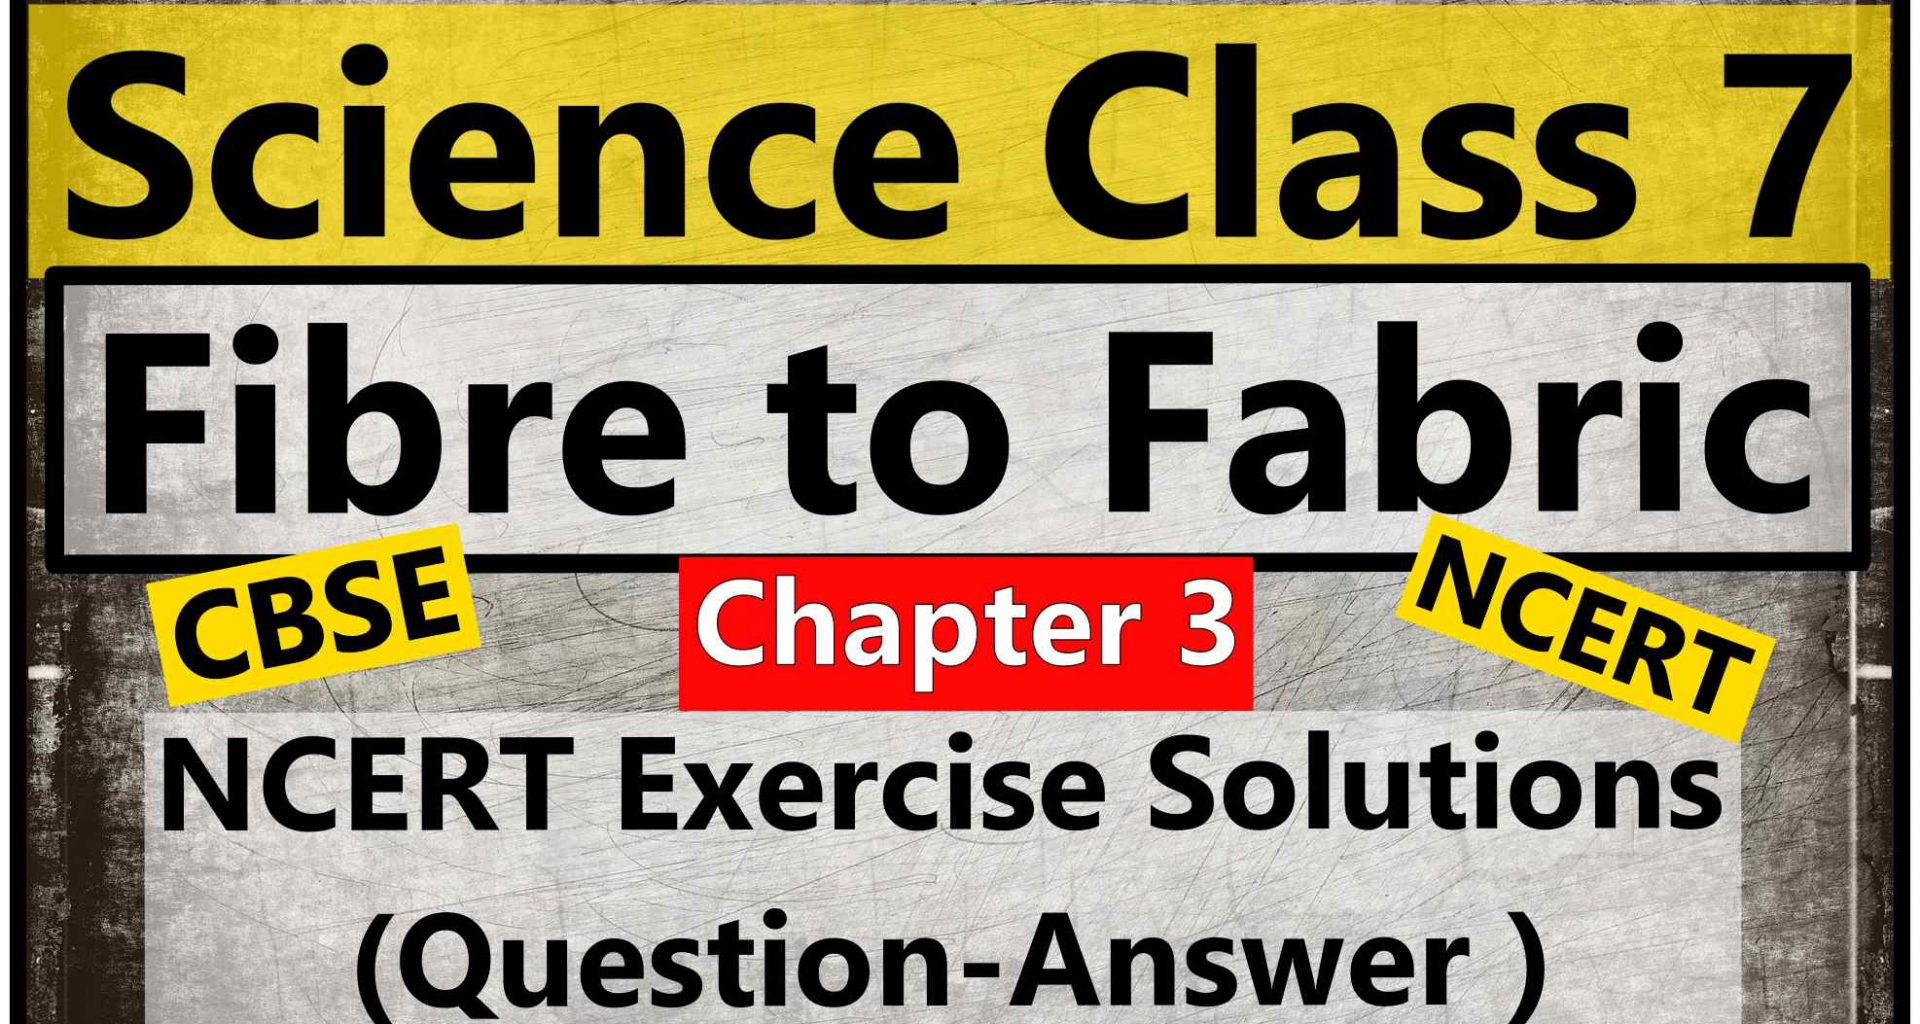 Science Class 7- Chapter 3- Fibre to Fabric- NCERT Exercise Solution (Question-Answer )